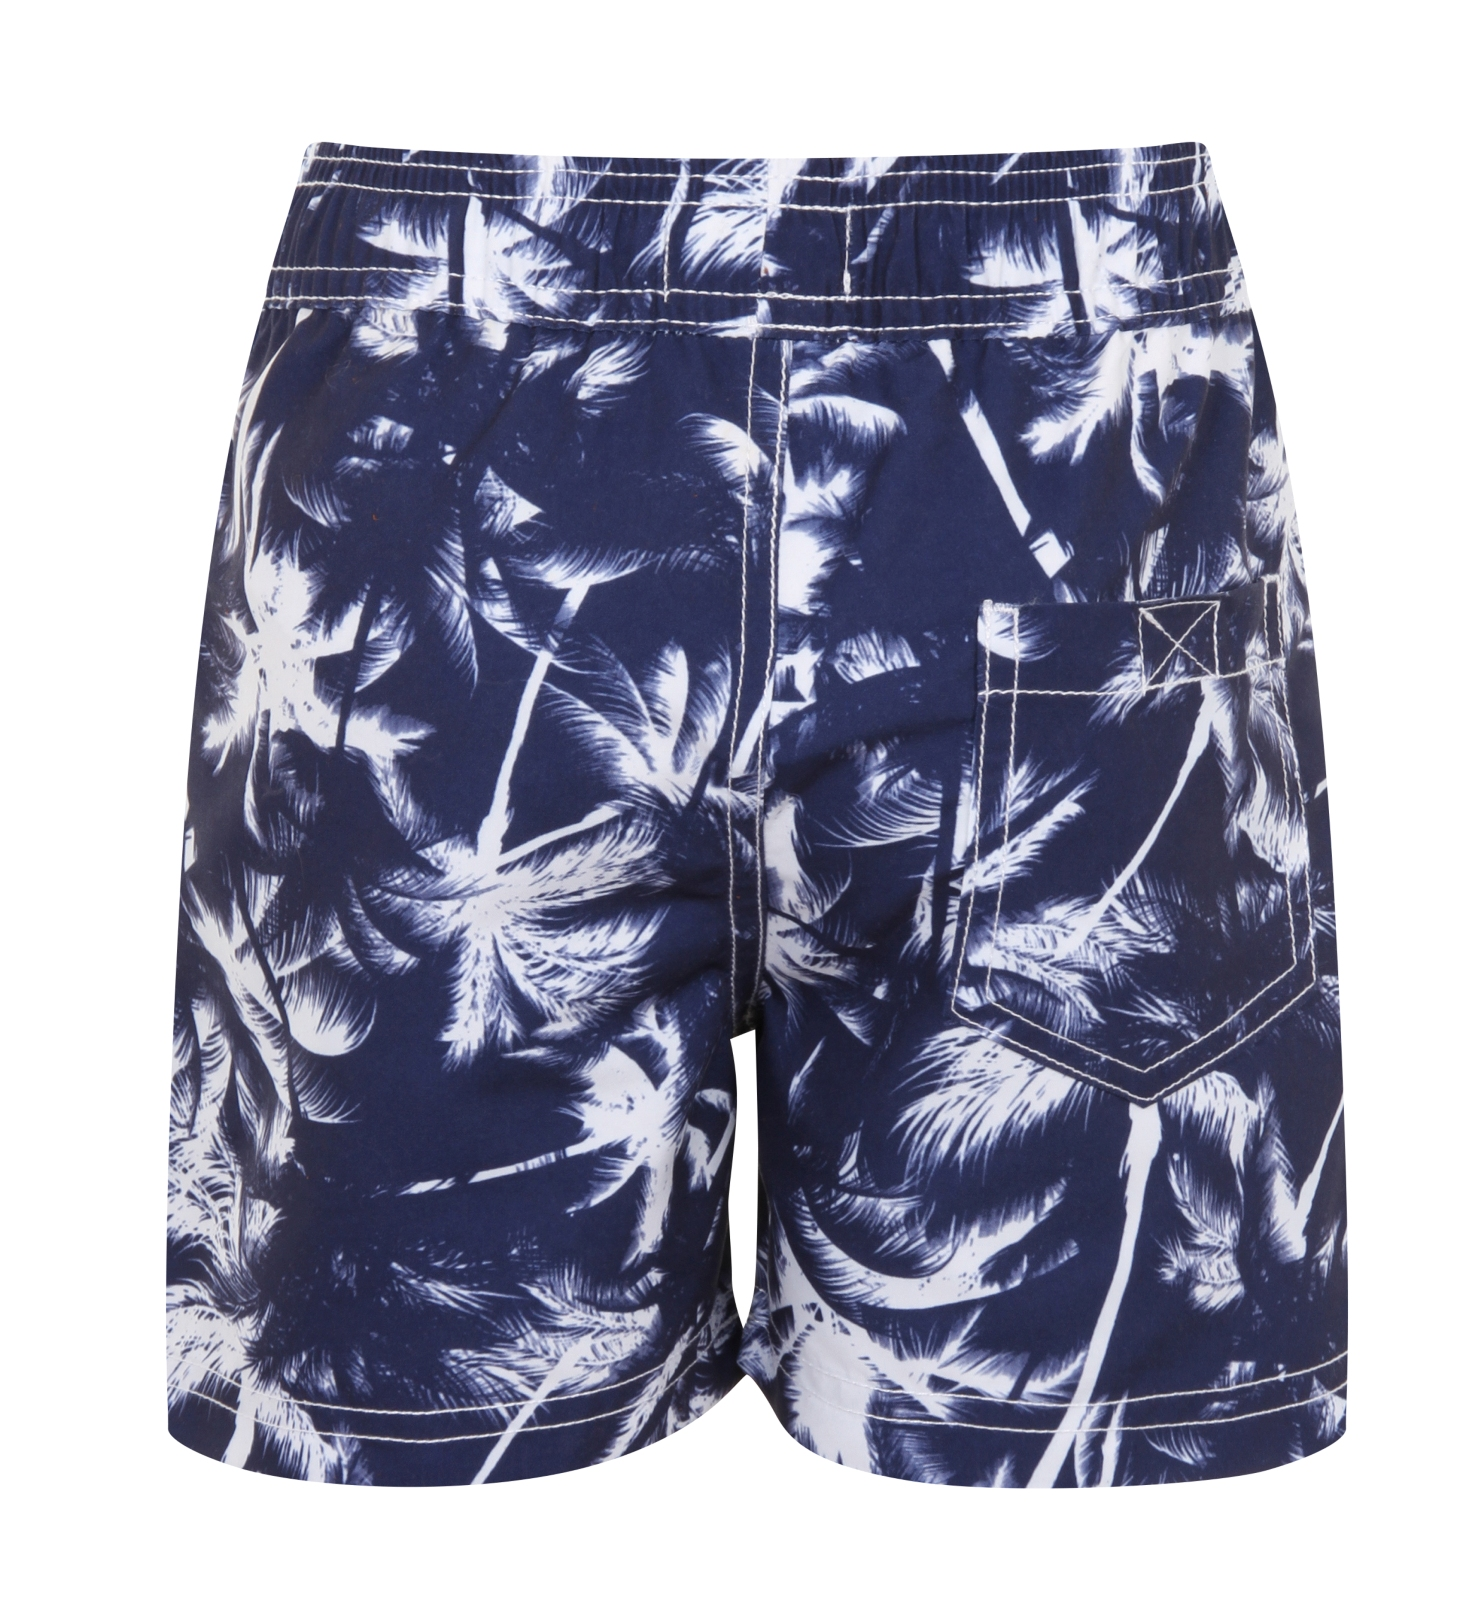 Tight fit swim trunks for water activities come in styles such as low cut briefs and square cut. Each exists in solid or colorful prints. The mid-length loose fit with an elastic waistband is great for beach sports.